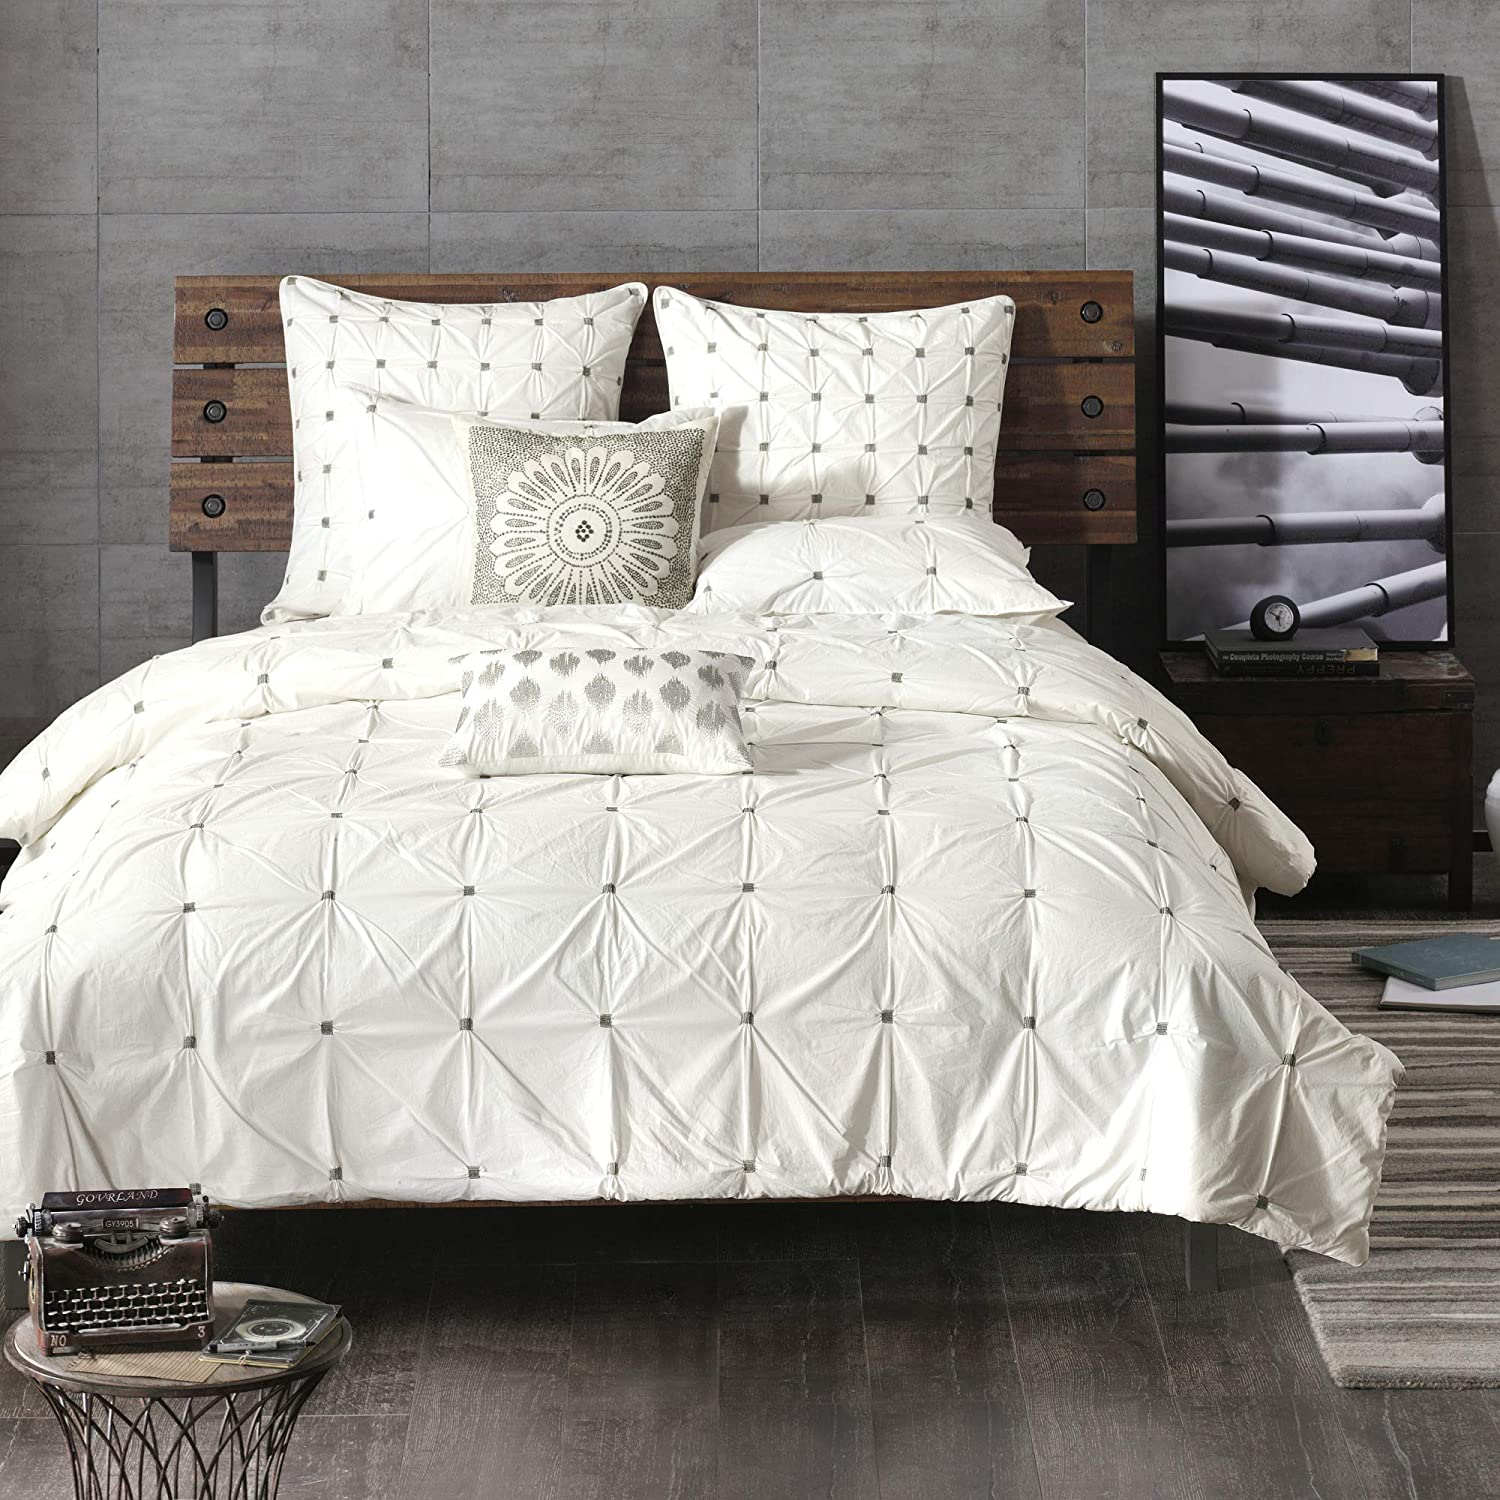 Ink Ivy Masie Duvet Cover King Cal King Size White Elastic Embroidery Tufted Ruffles Duvet Cover Set 3 Piece 100 Cotton Percale Light Weight Bed Comforter Covers Home Kitchen